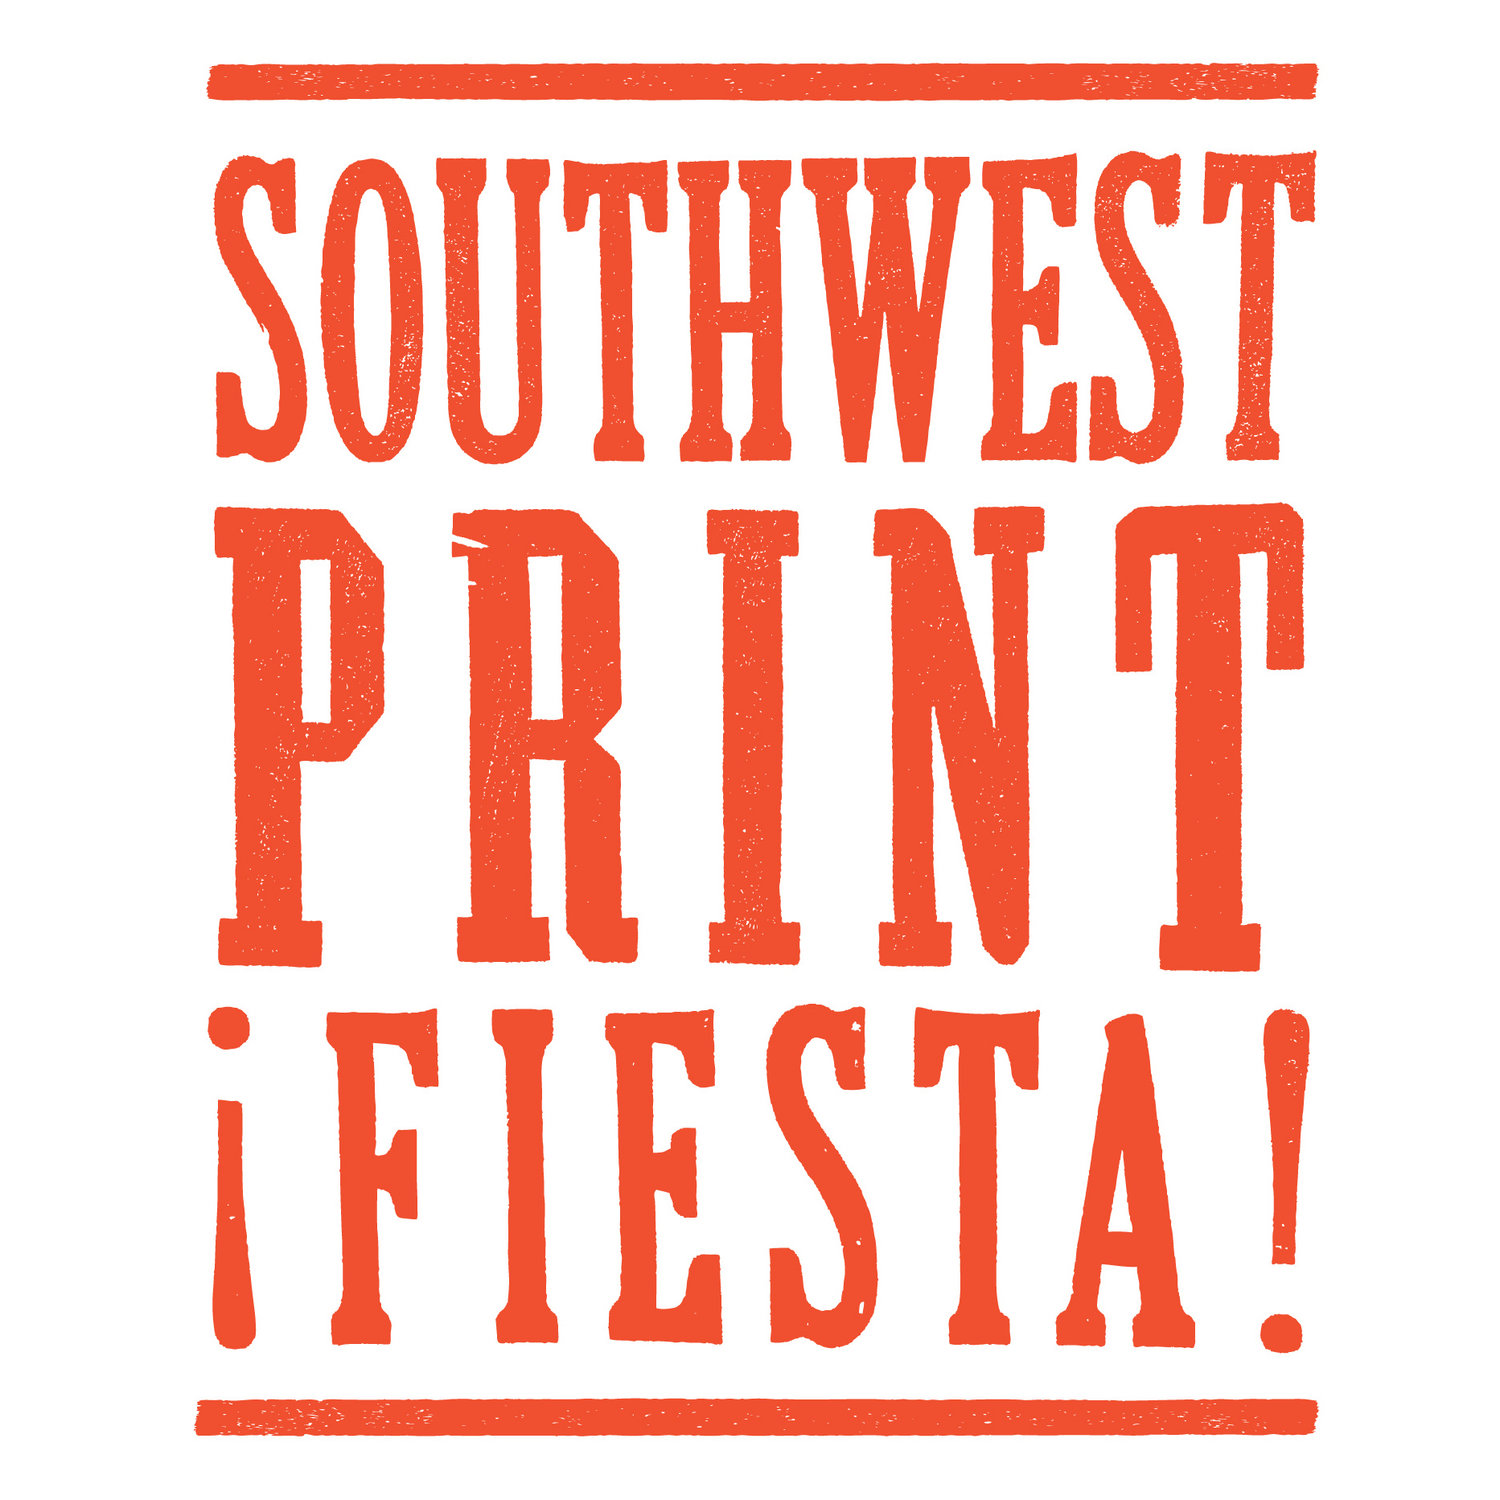 Back by popular demand! Save the date - October 11-13, 2019 - See more large scale printing, exhibitions, and workshops at the Southwest Print Fiesta held in historic downtown Silver City, NM